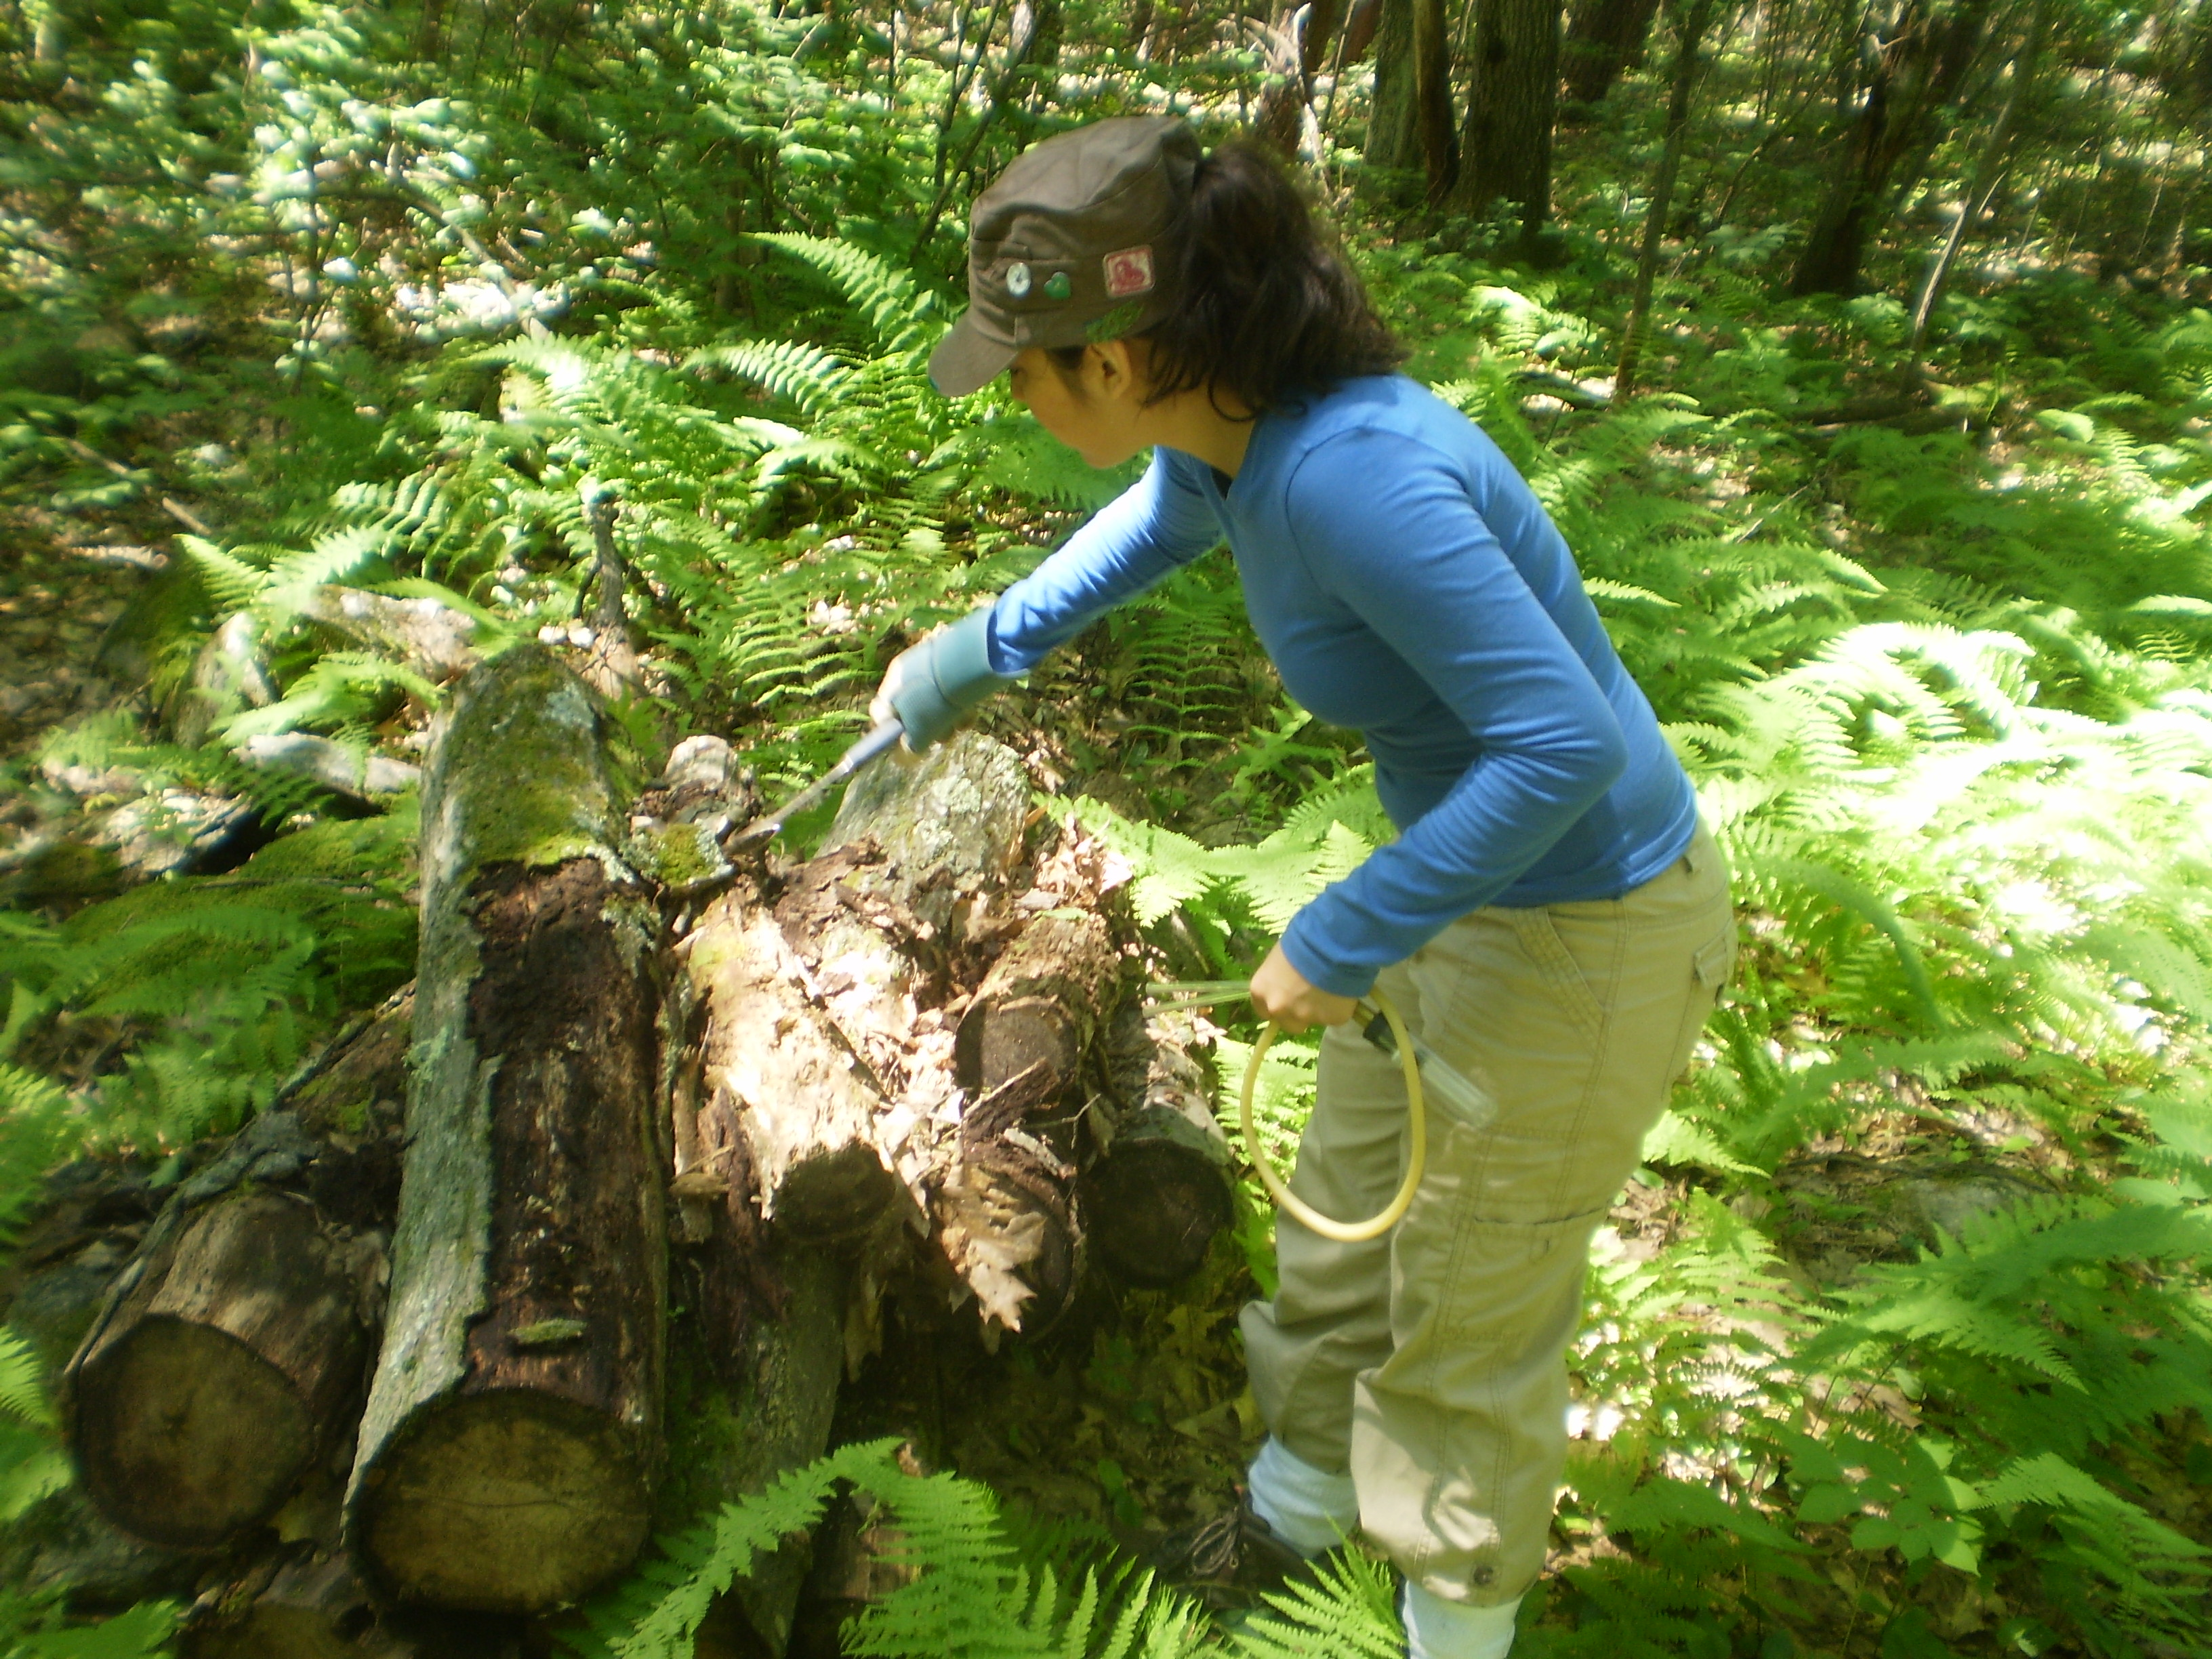 reu opportunities the long term ecological research network the harvard forest summer research program in ecology is an opportunity for students to participate in 11 weeks of mentored paid independent research